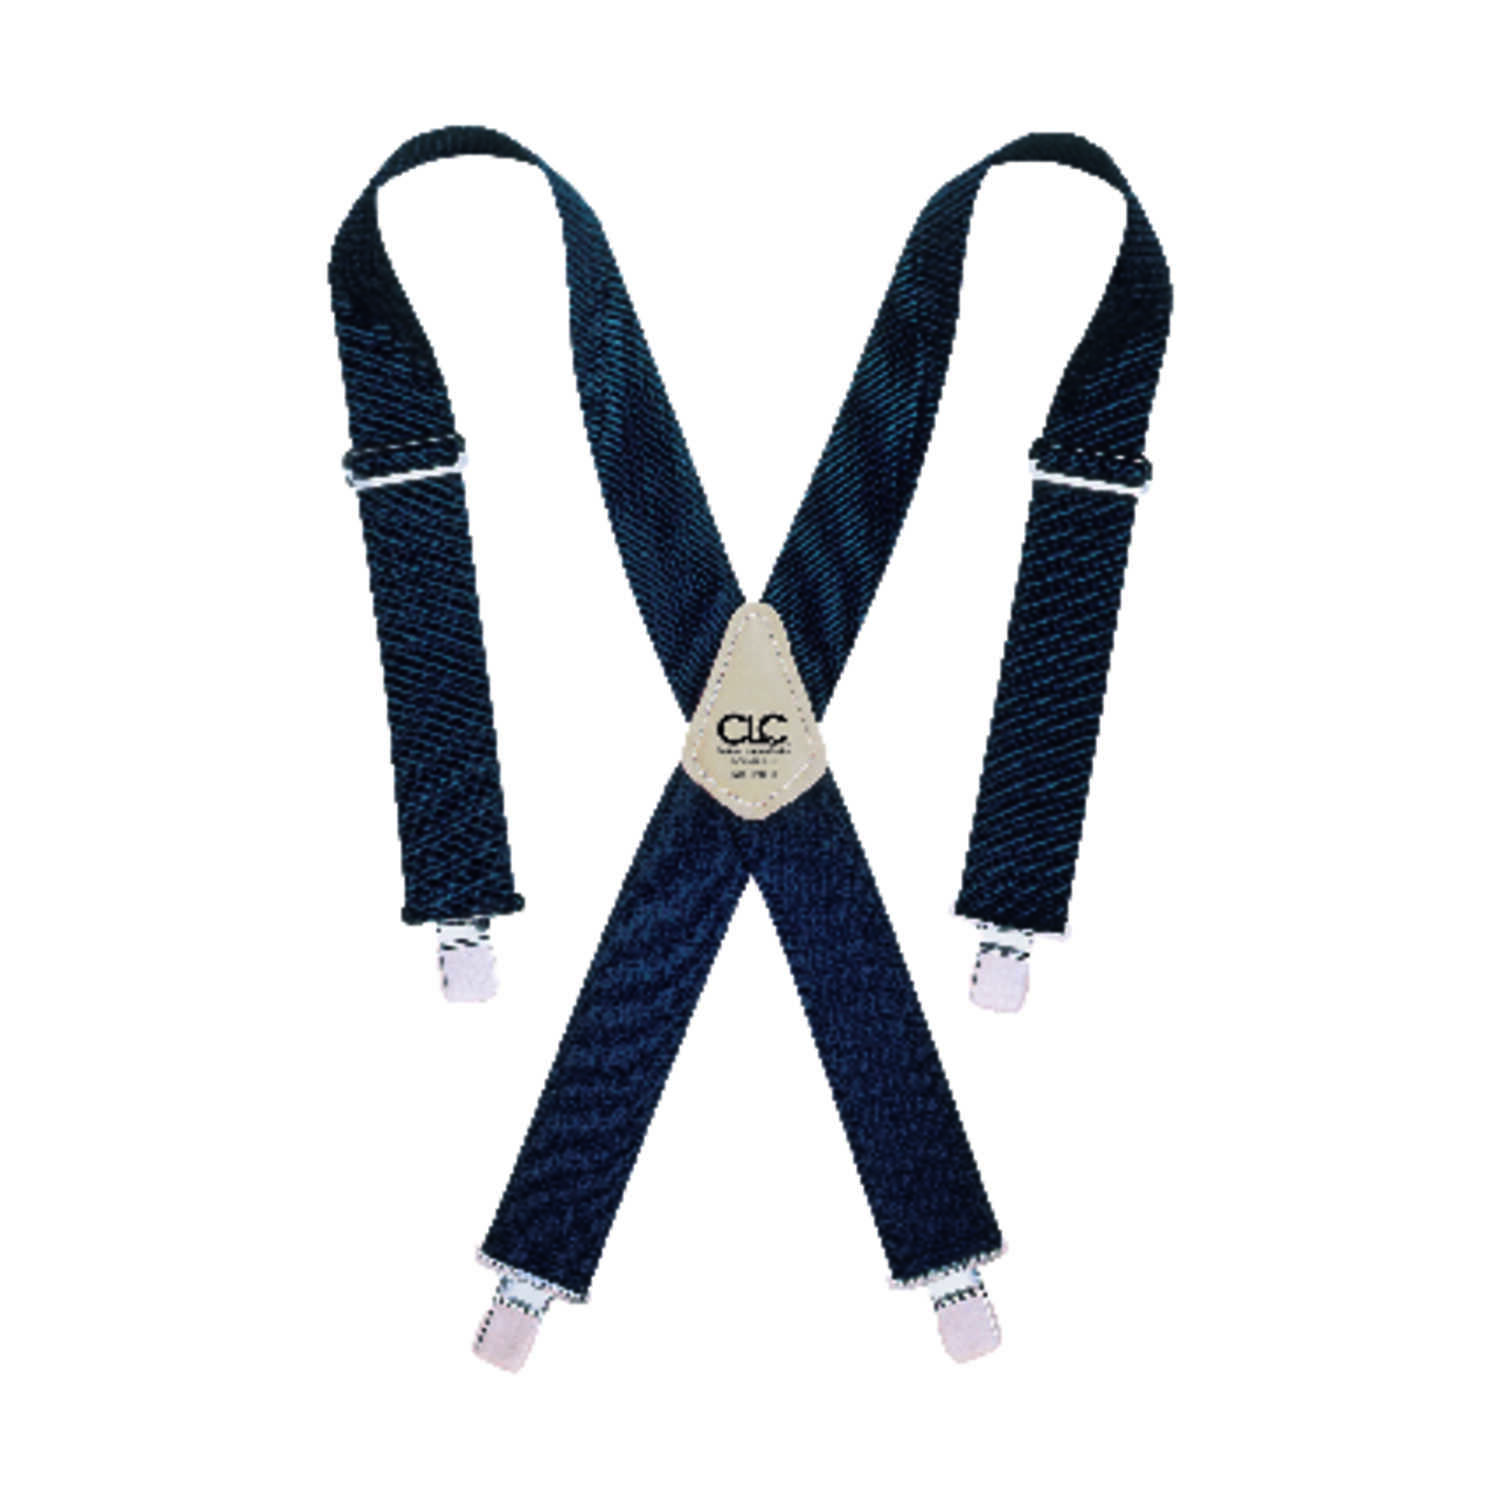 CLC Work Gear  4 in. L x 2 in. W Polypropylene  Adjustable Suspenders  Blue  One Size Fits Most  1 p